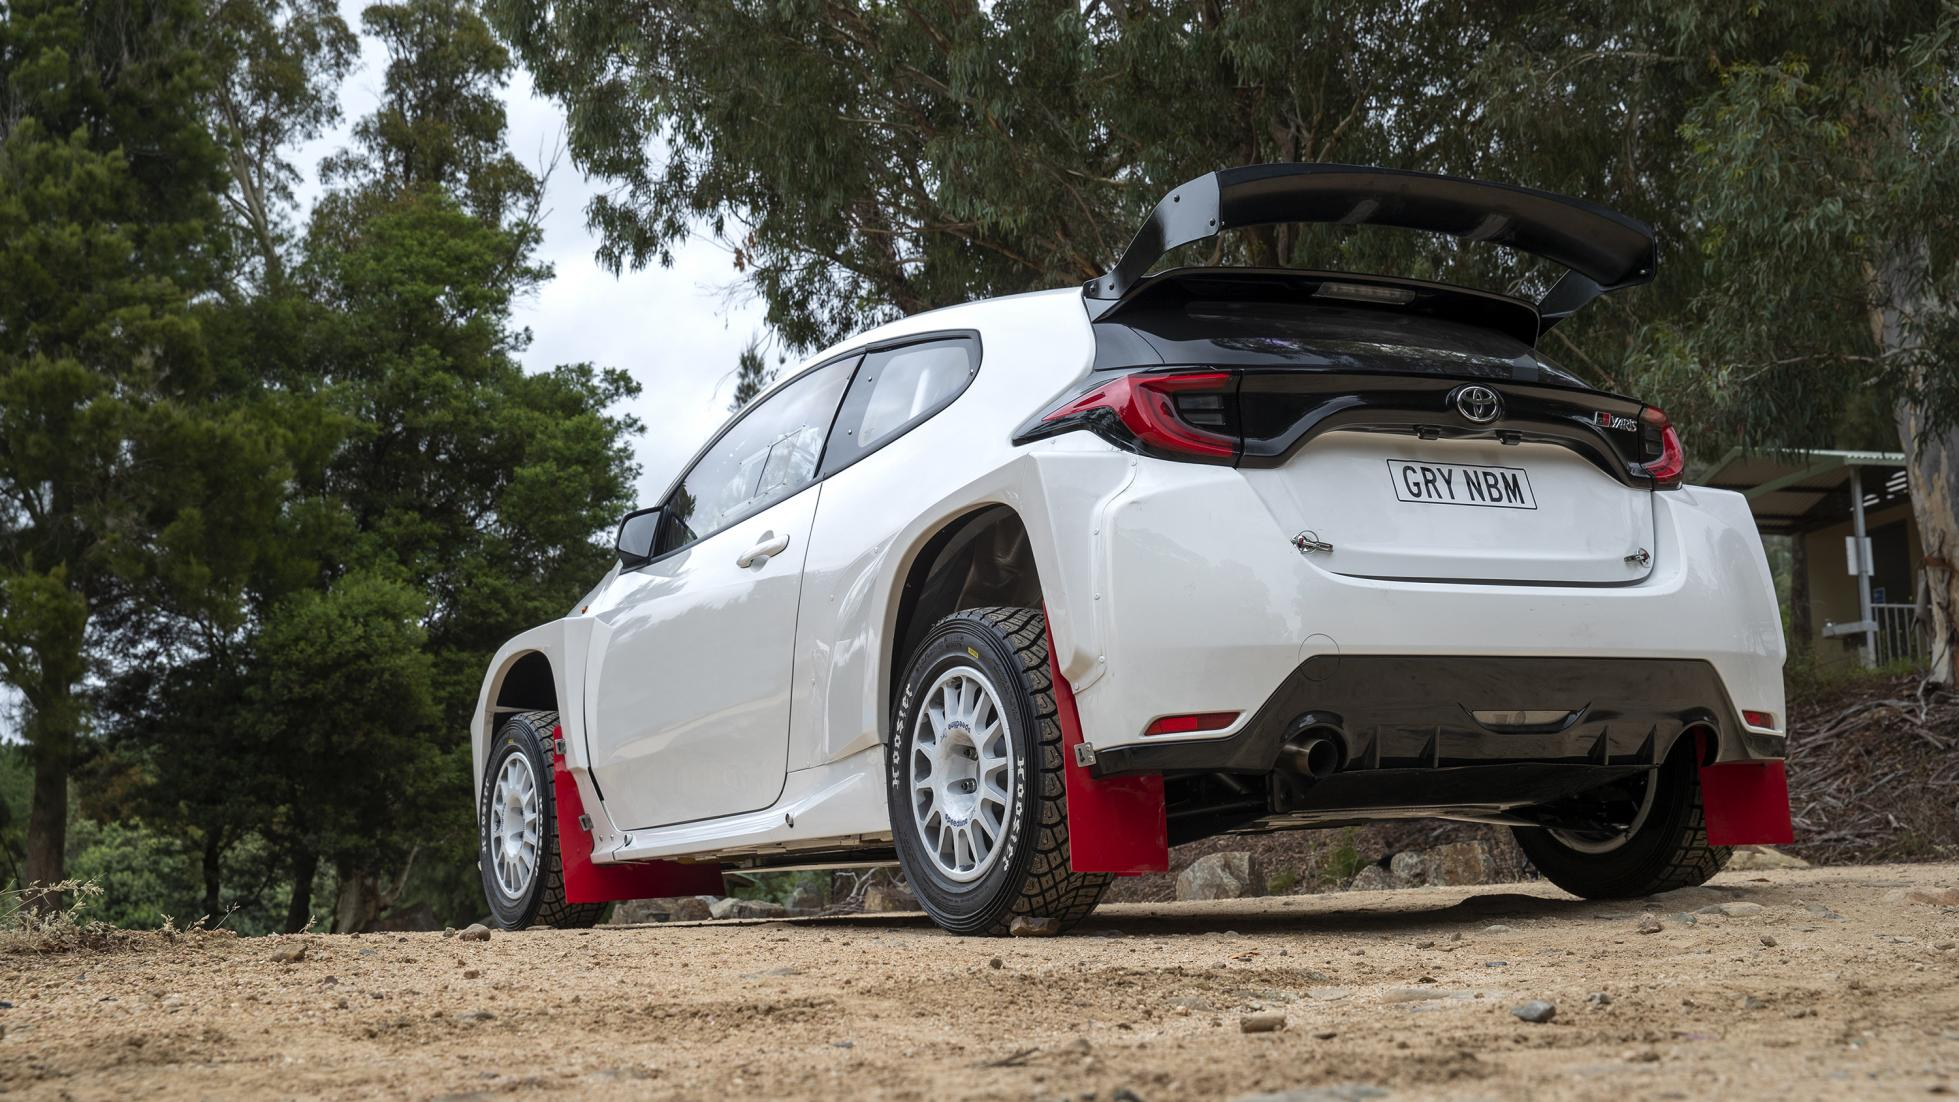 The Toyota GR Yaris AP4 Rally Car Angled Rear View